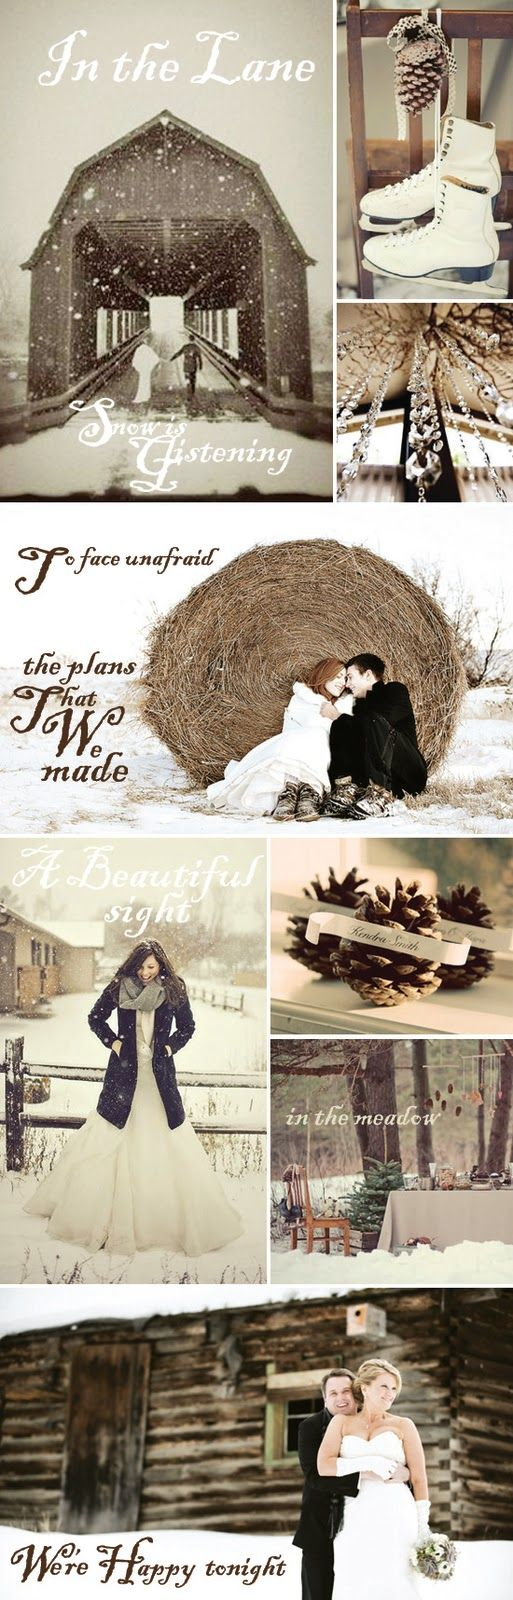 Walking in a Winter Wedding Land - My Wedding Reception Ideas | Blog